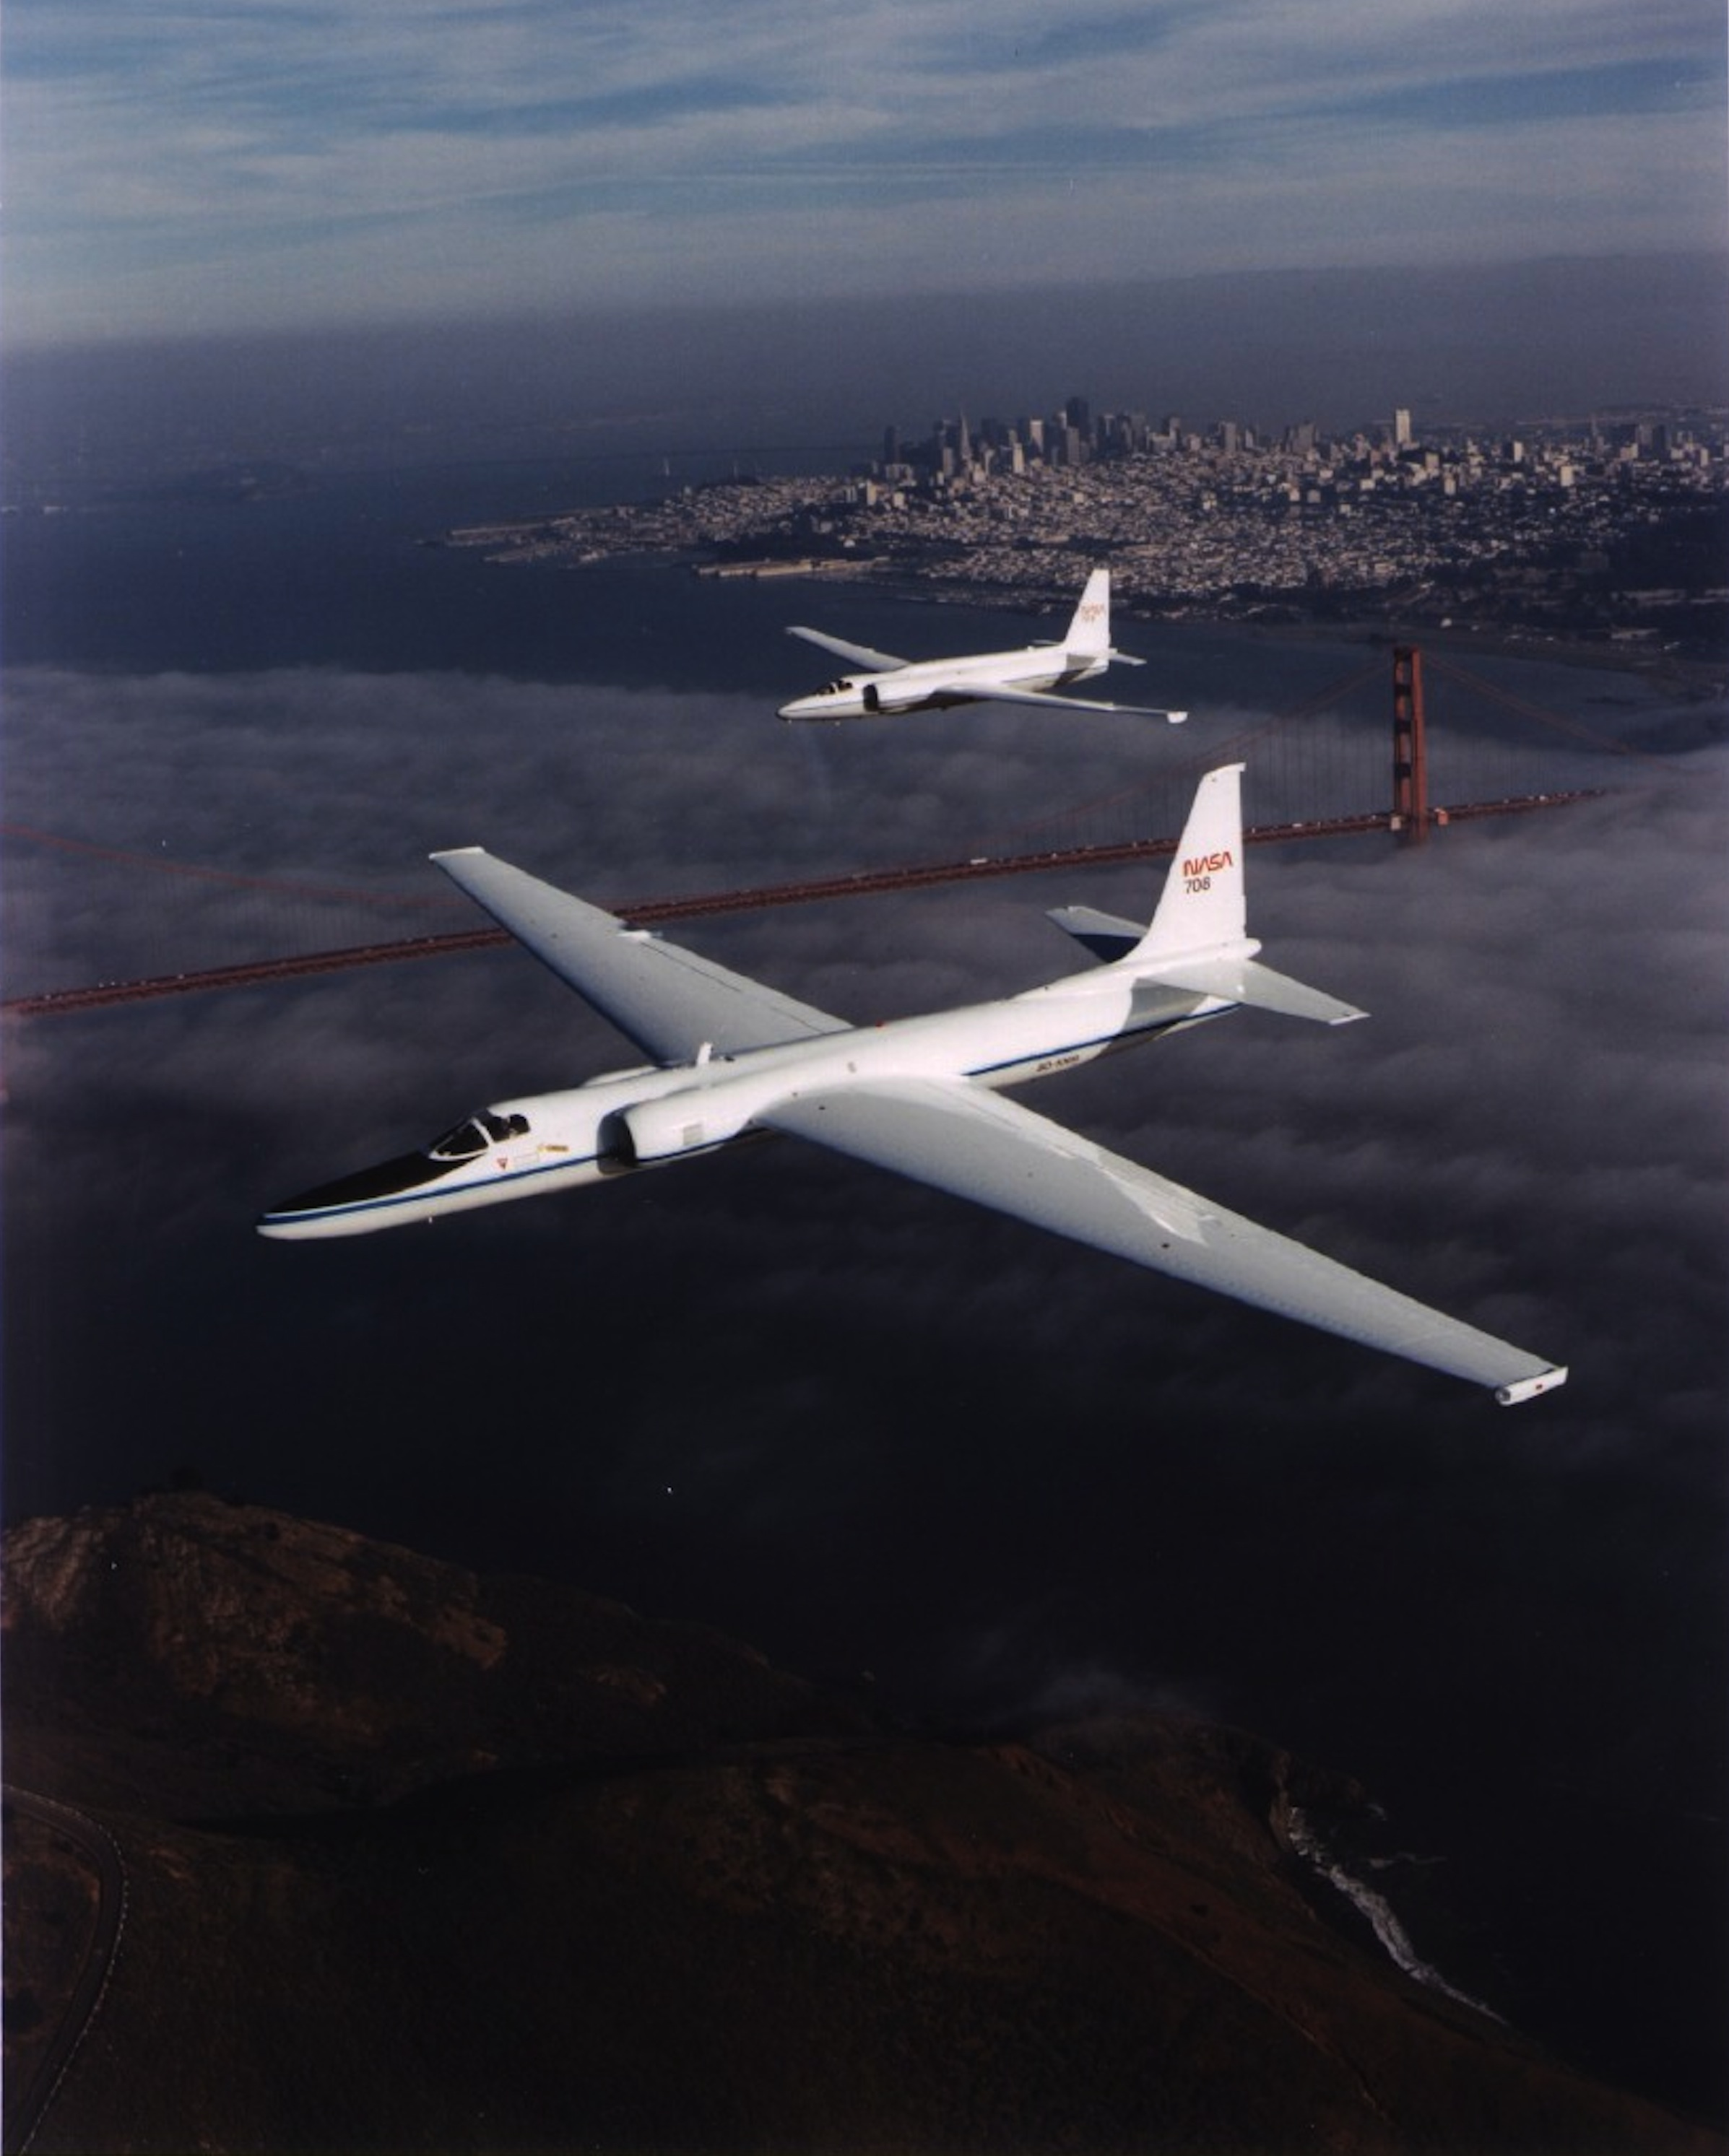 u2_110_er-2_and_u-2c_sfo_bridge.jpg